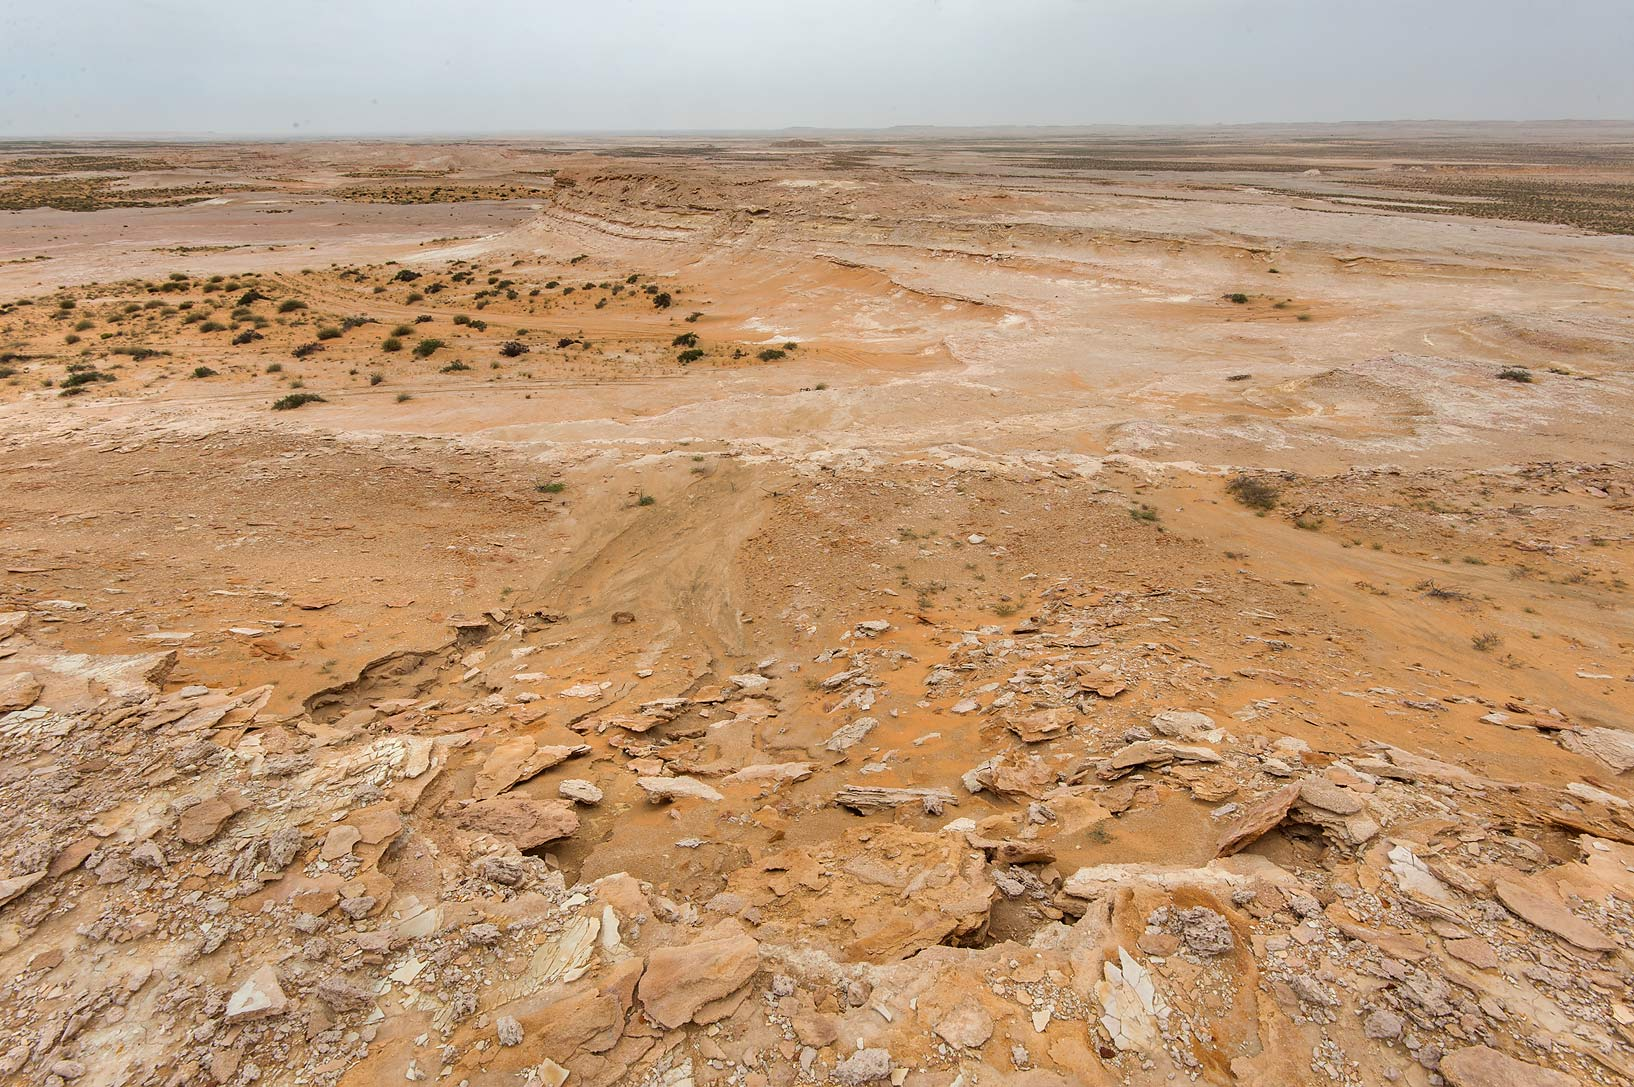 View from the edge of the plateau of a tabletop...Reserve near Abu Samra. Southern Qatar